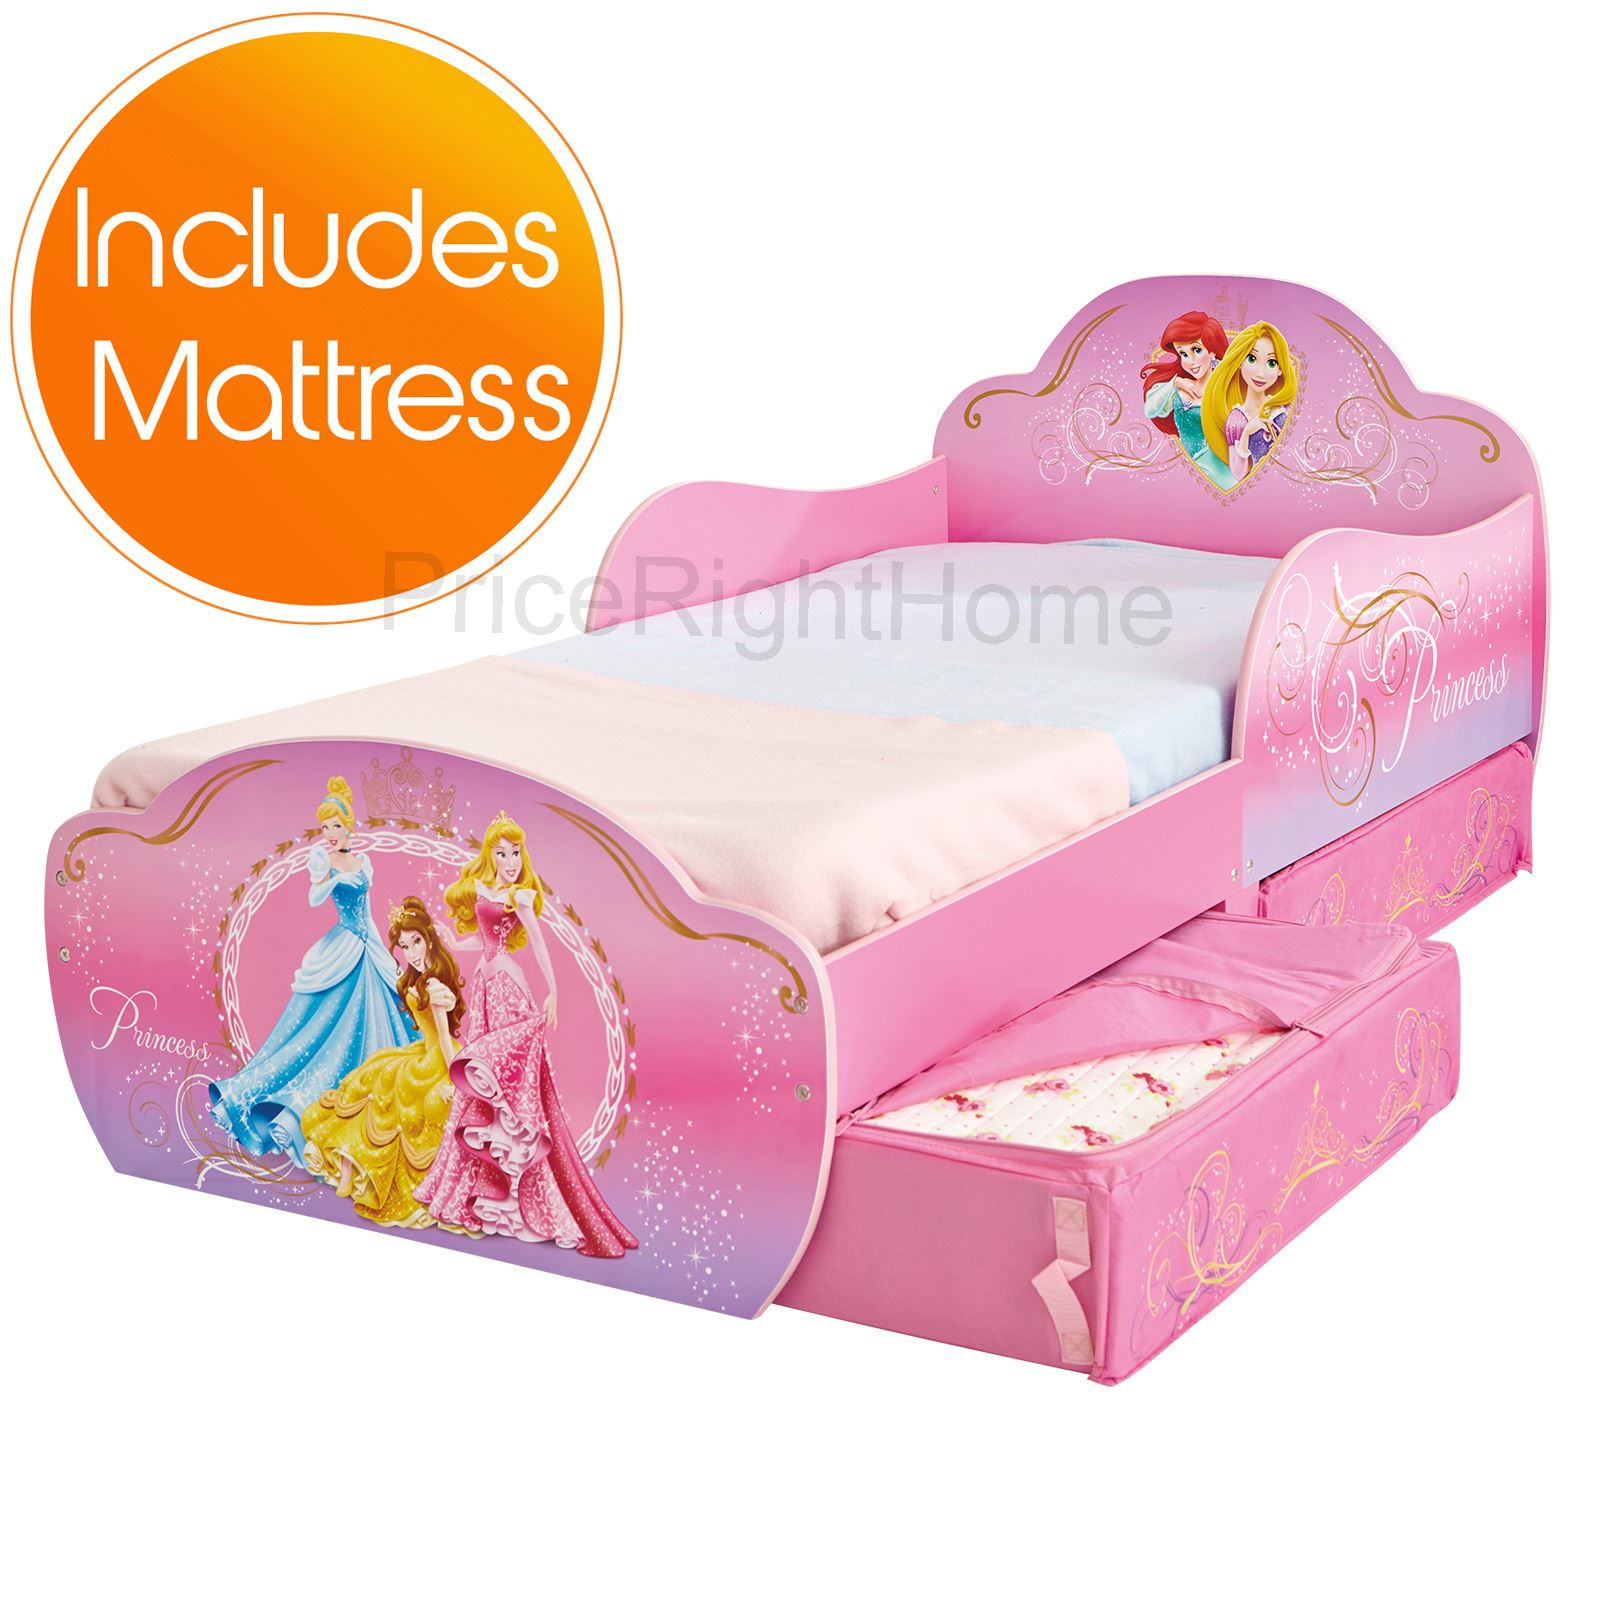 DISNEY PRINCESS MDF TODDLER BED WITH STORAGE DELUXE